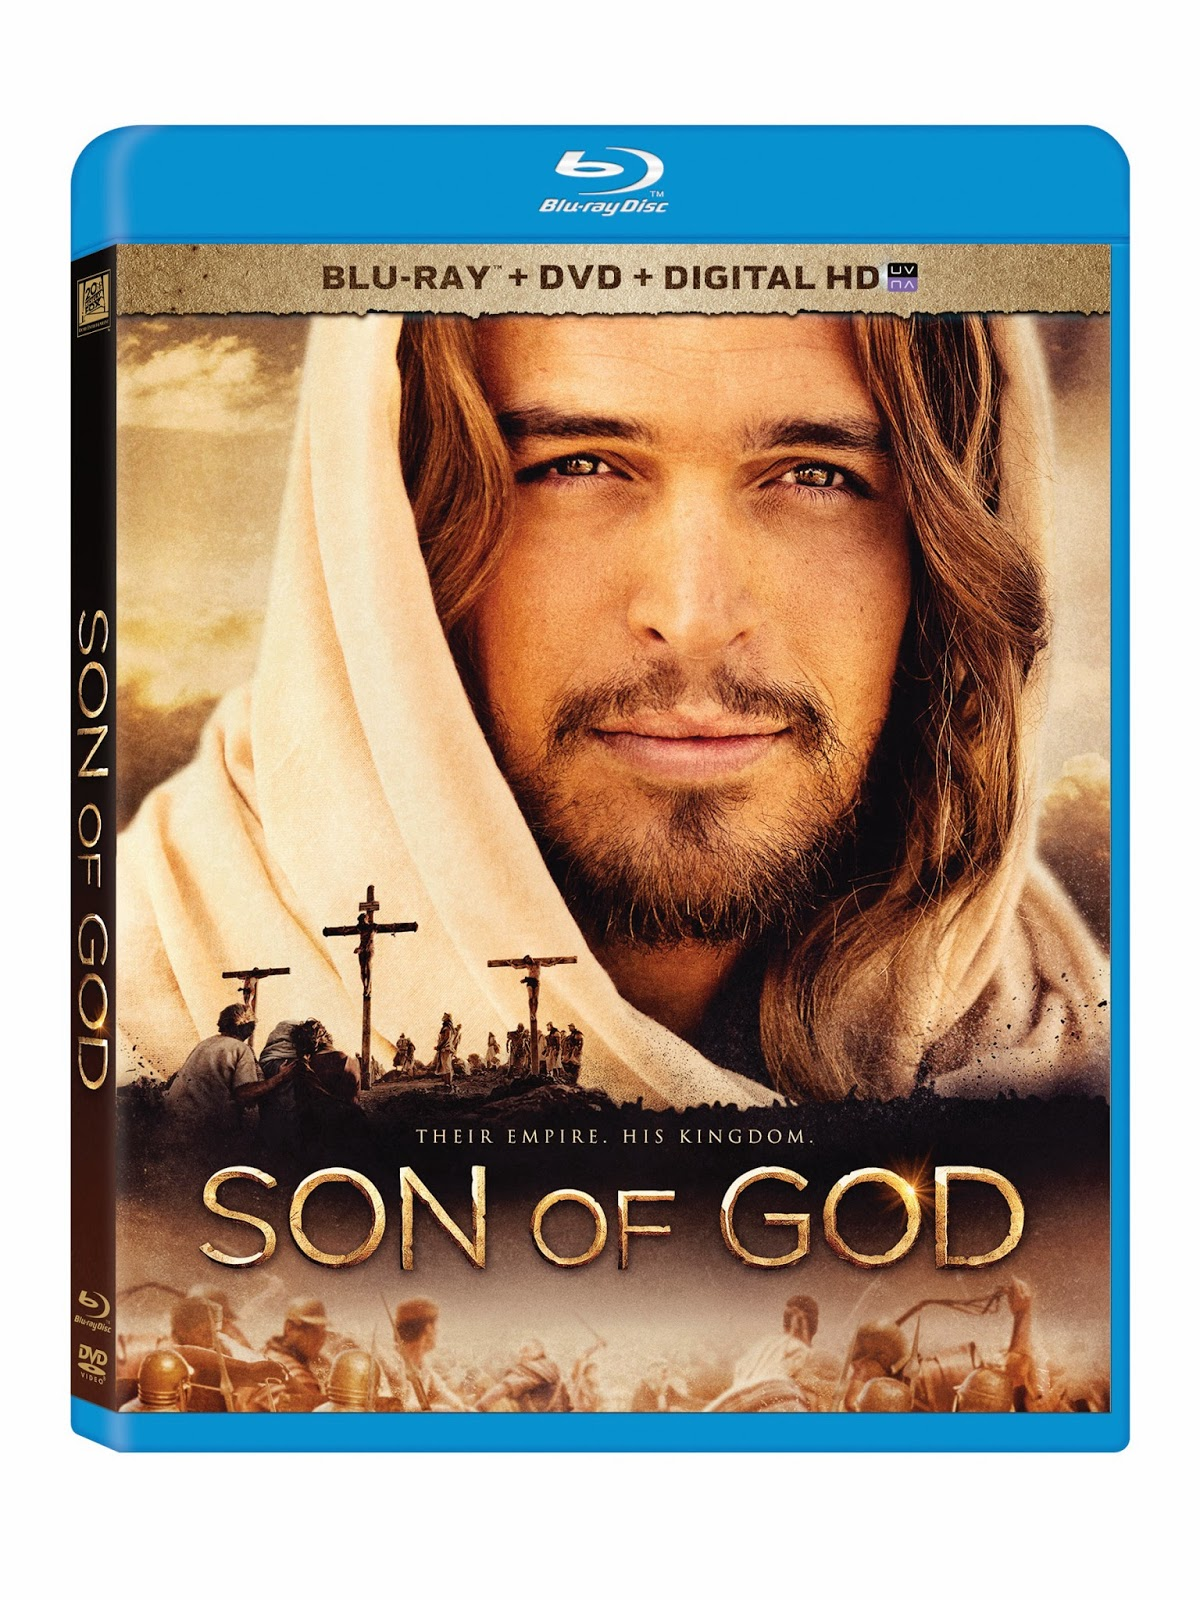 Son of God Blu-ray giveaway